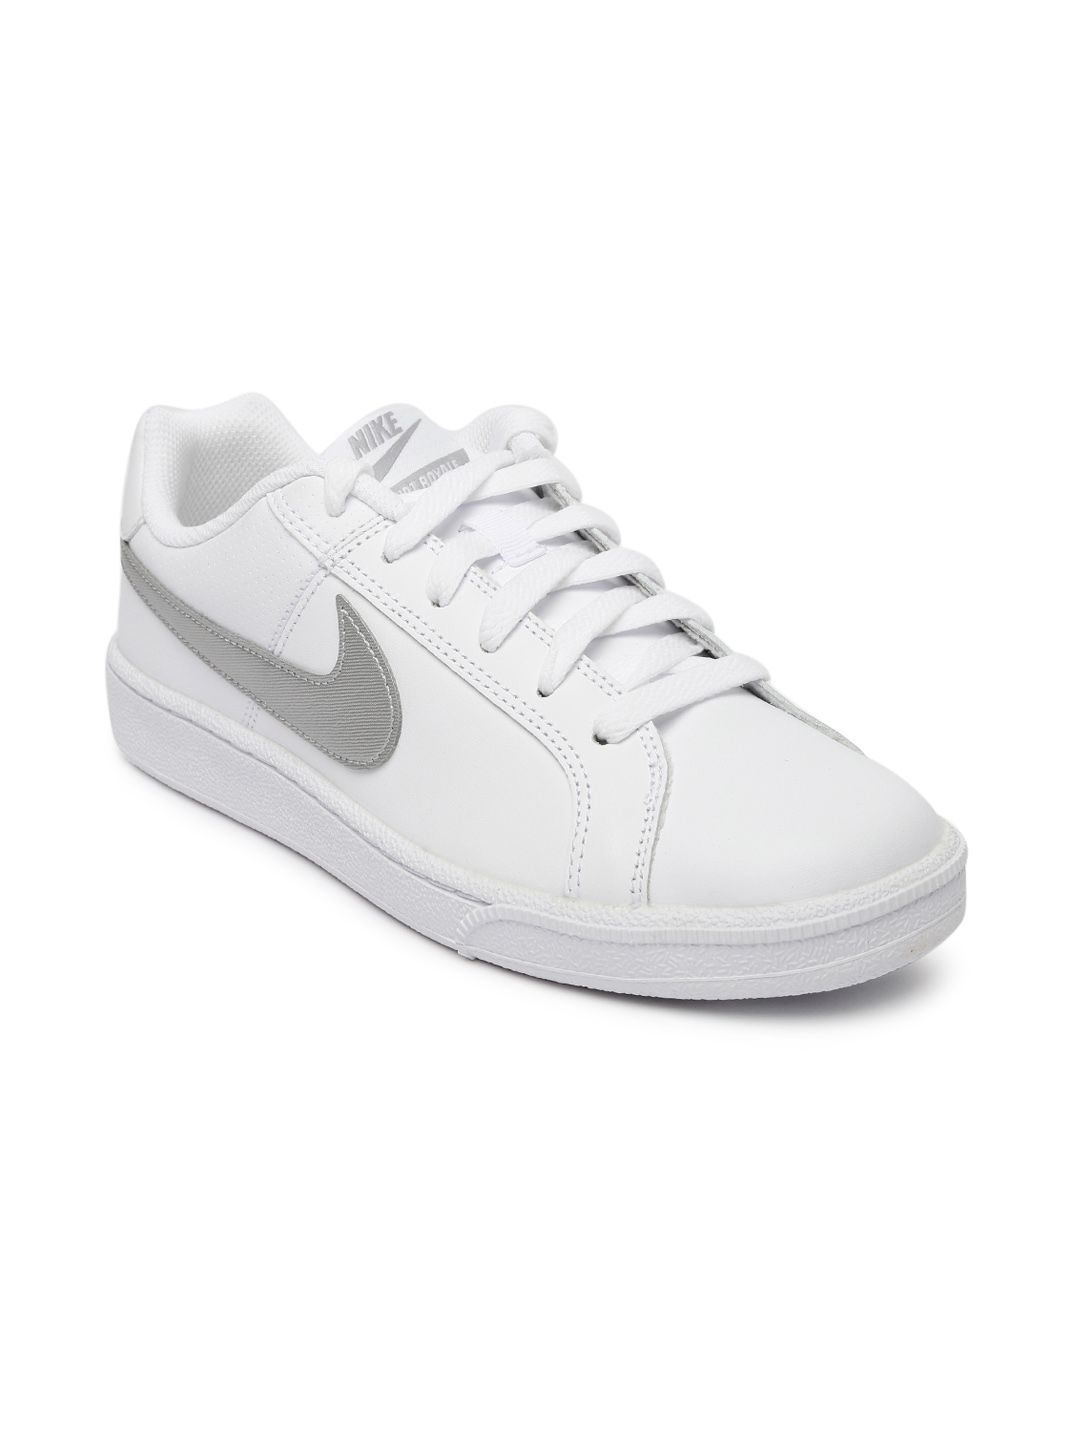 white nike sneakers for women